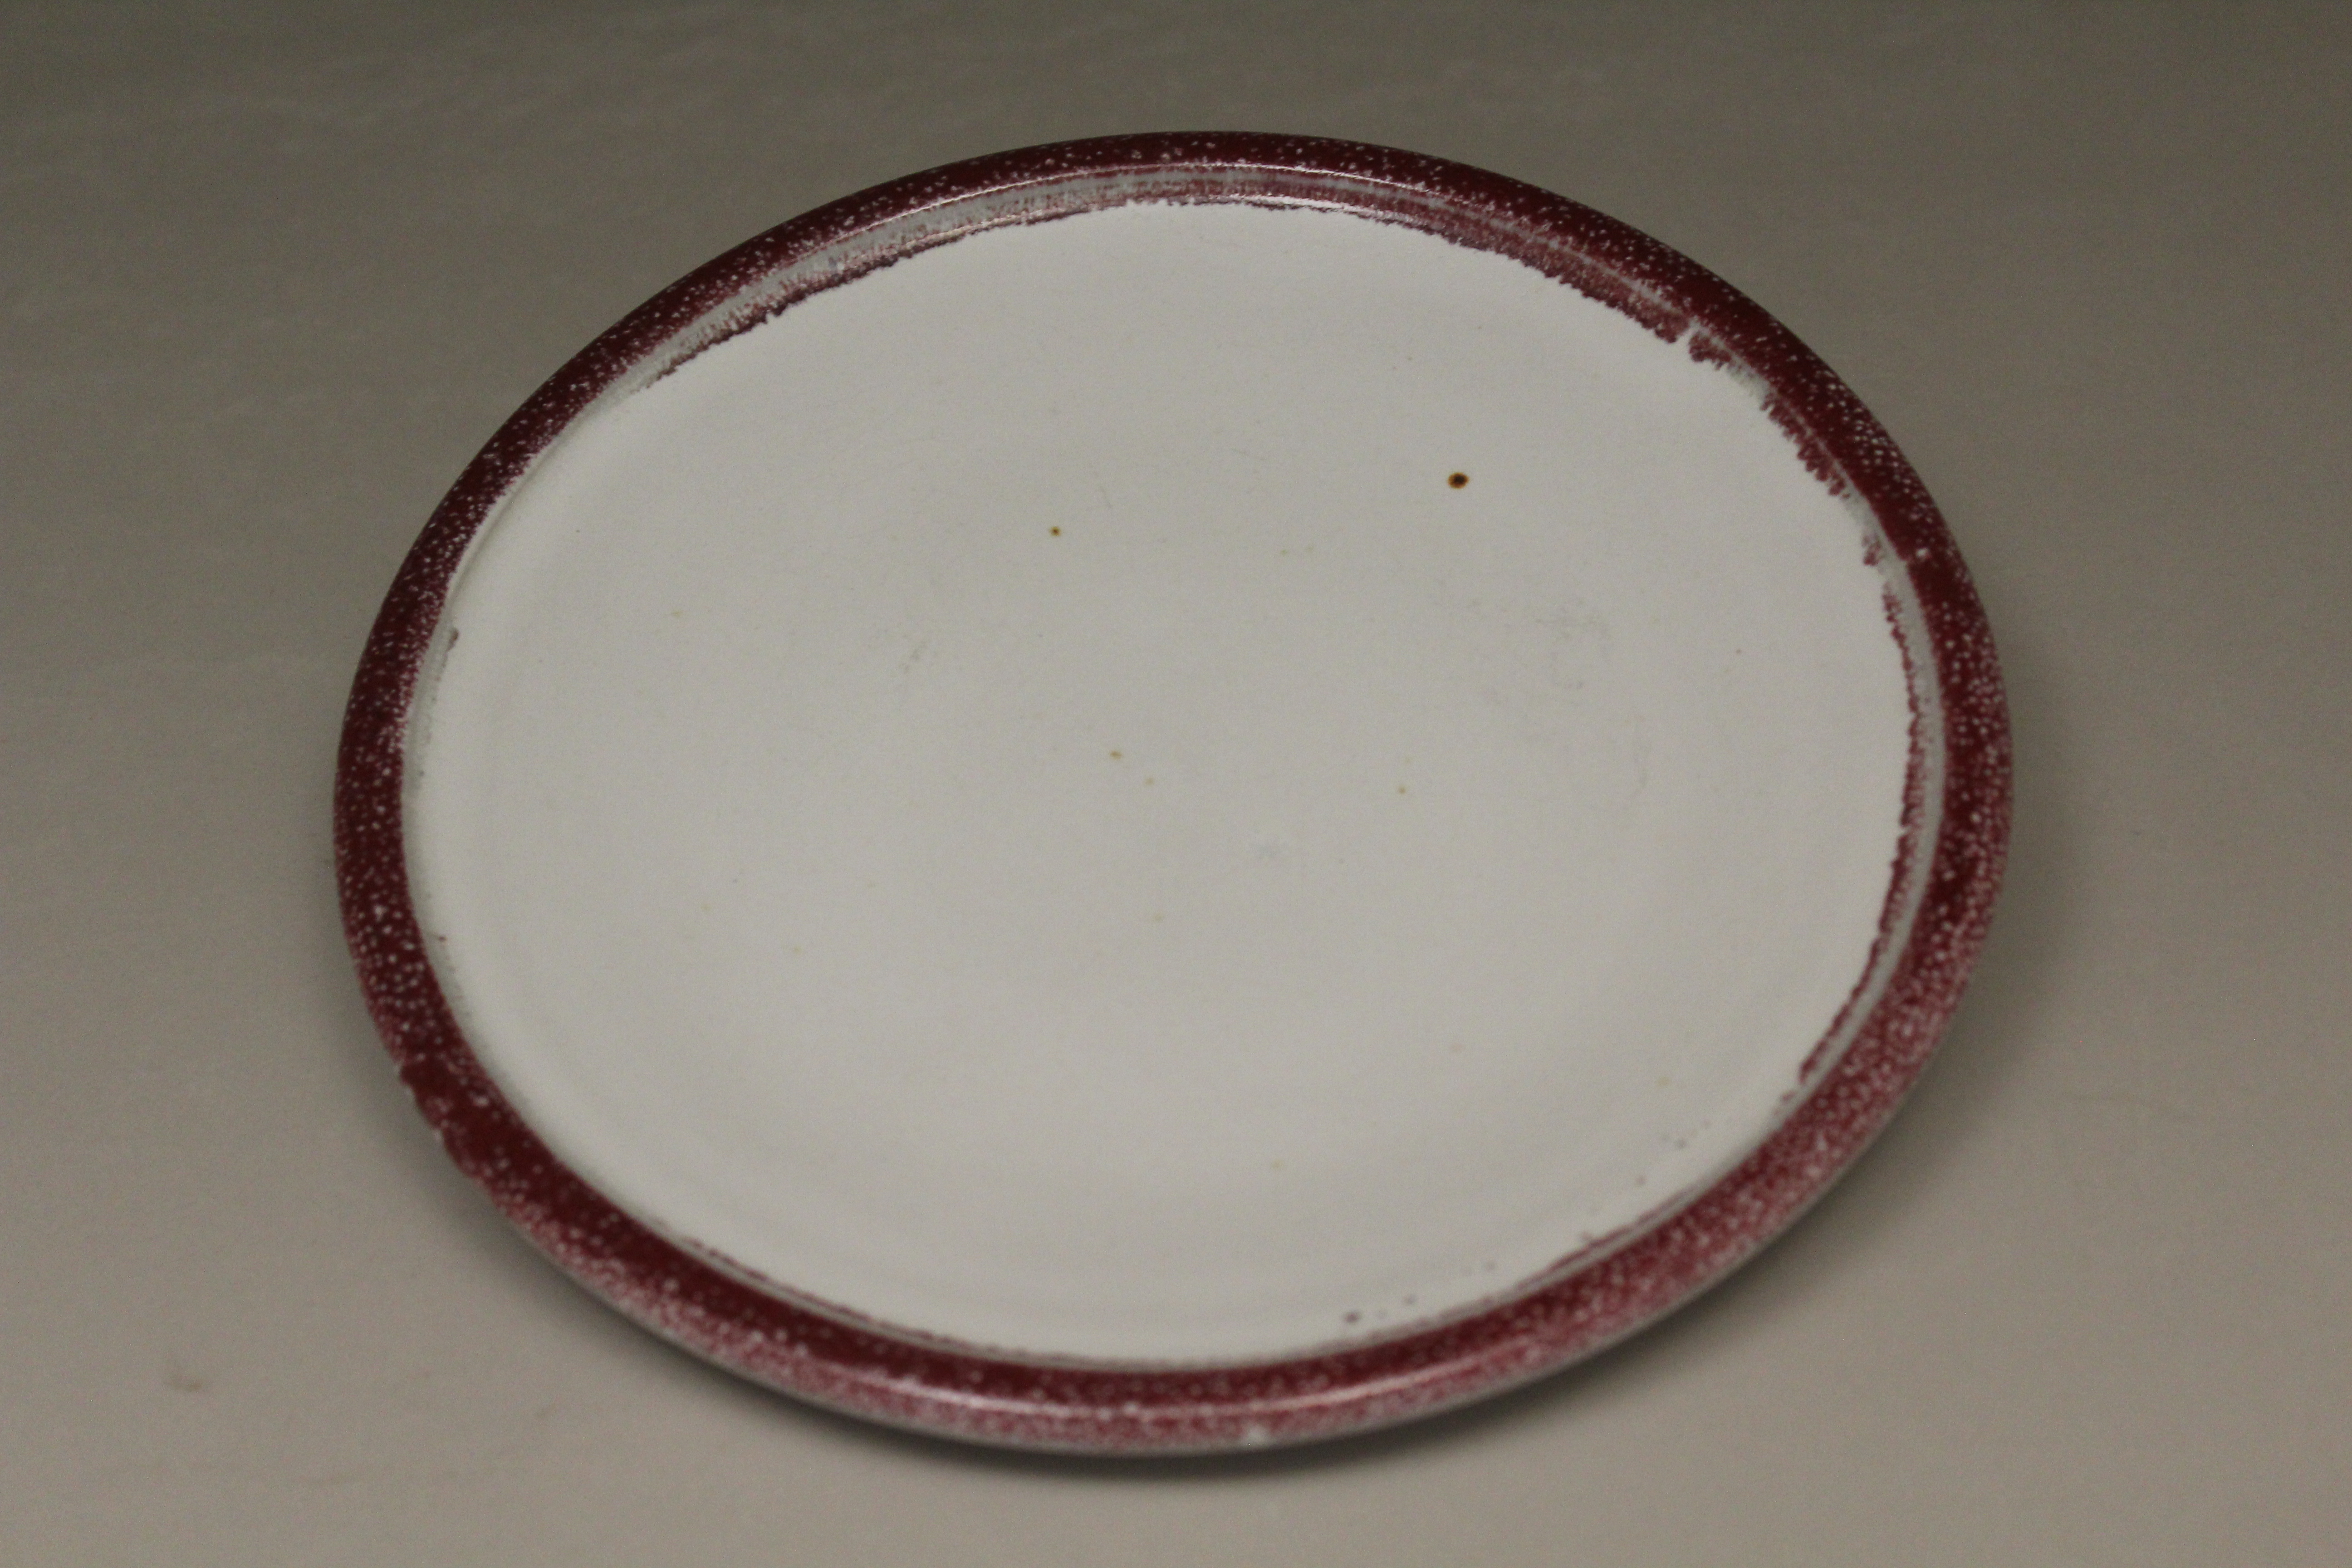 Small Platter Smooth Design in White and Red Glaze